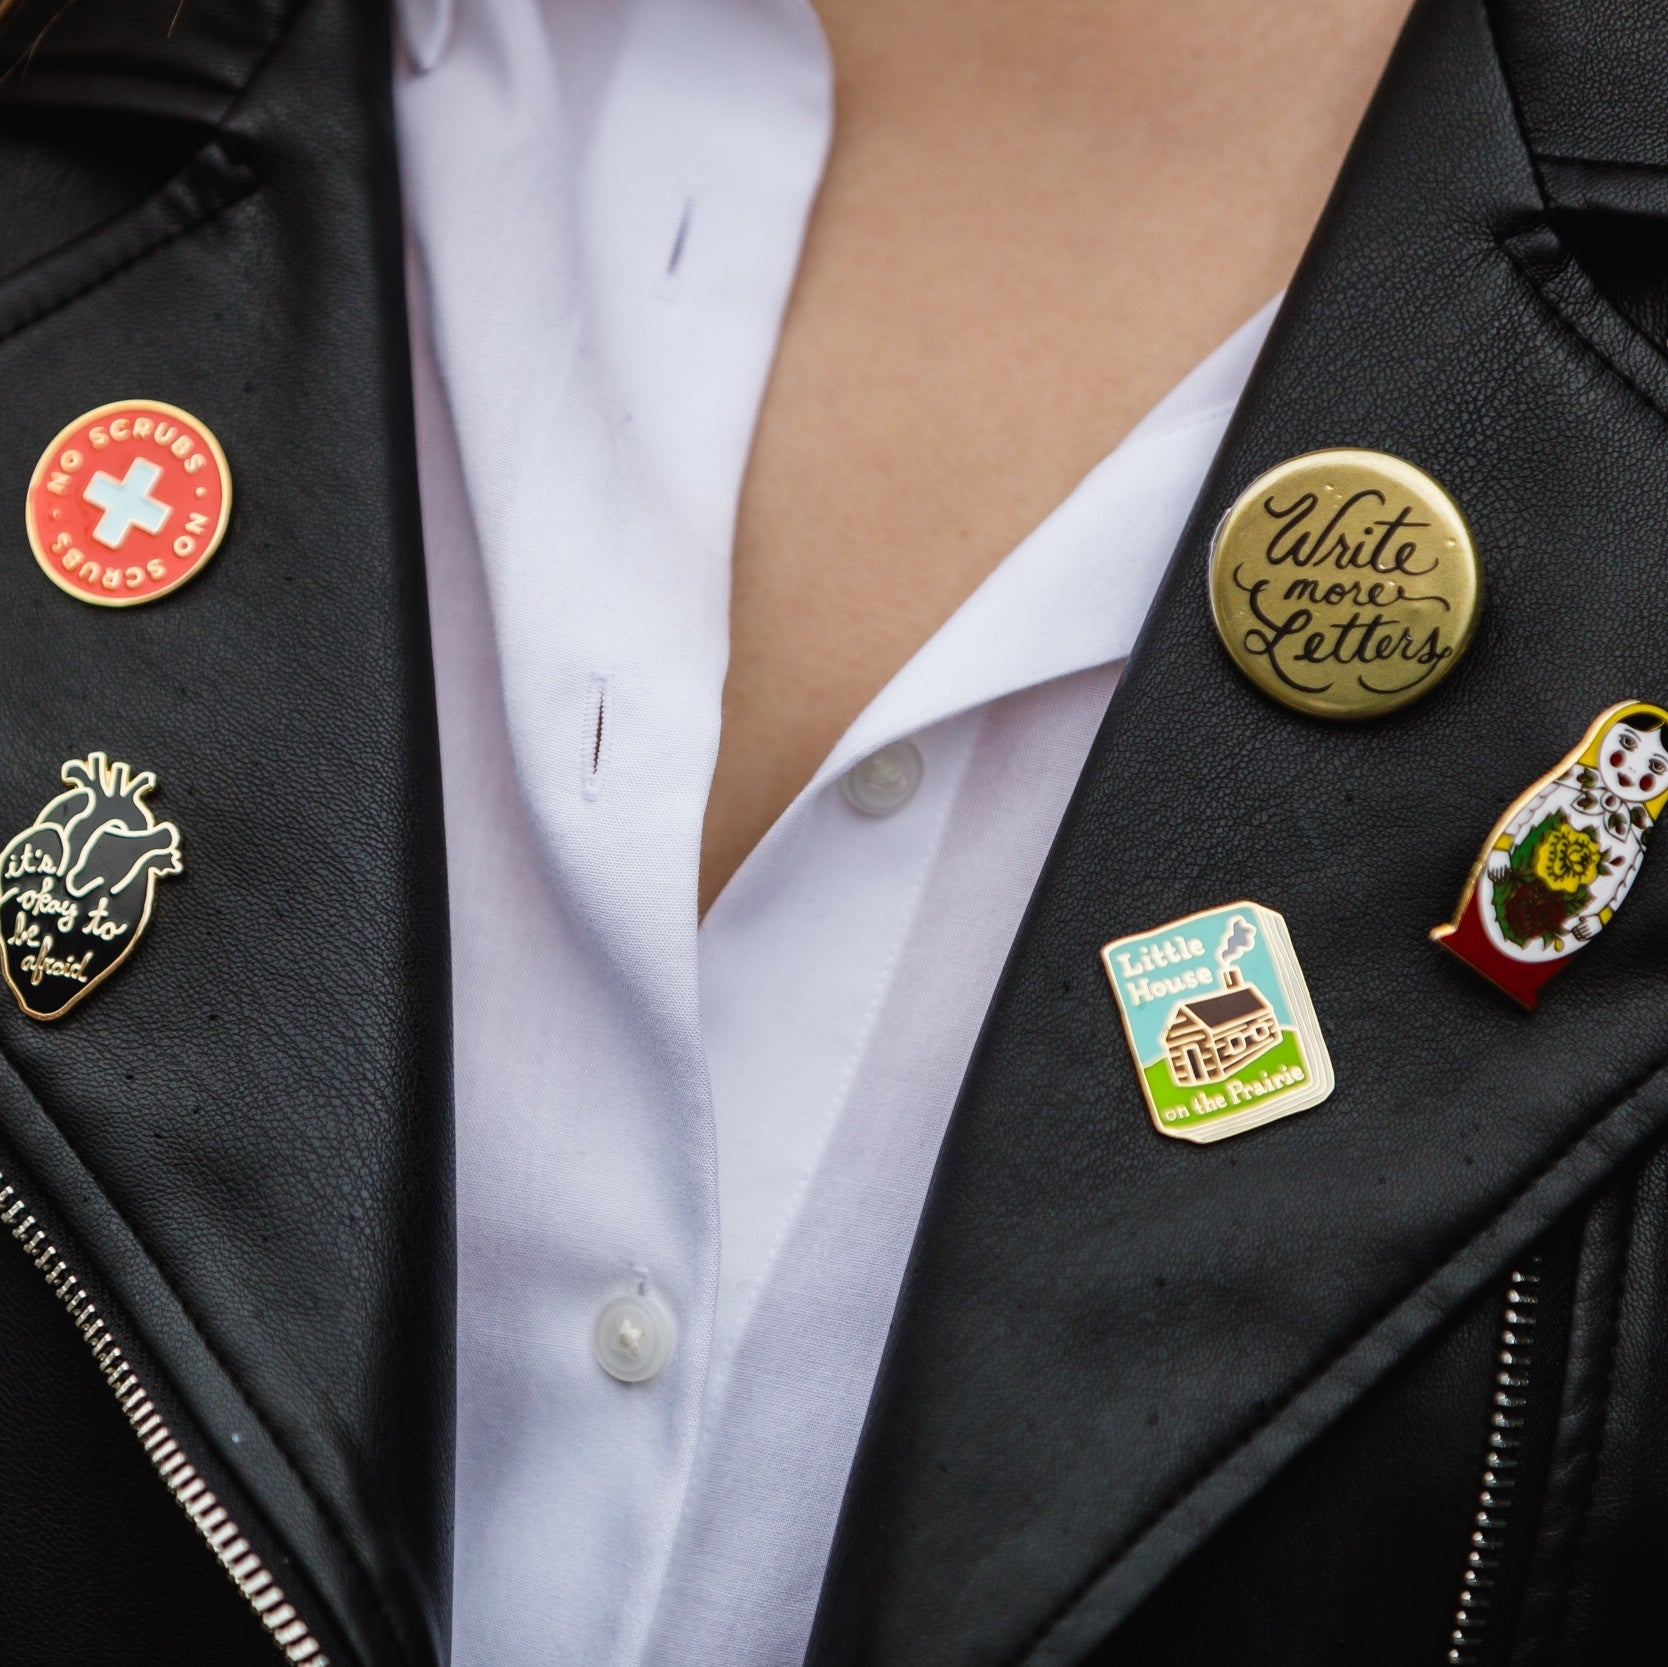 Spotlight On: Pins & Patches